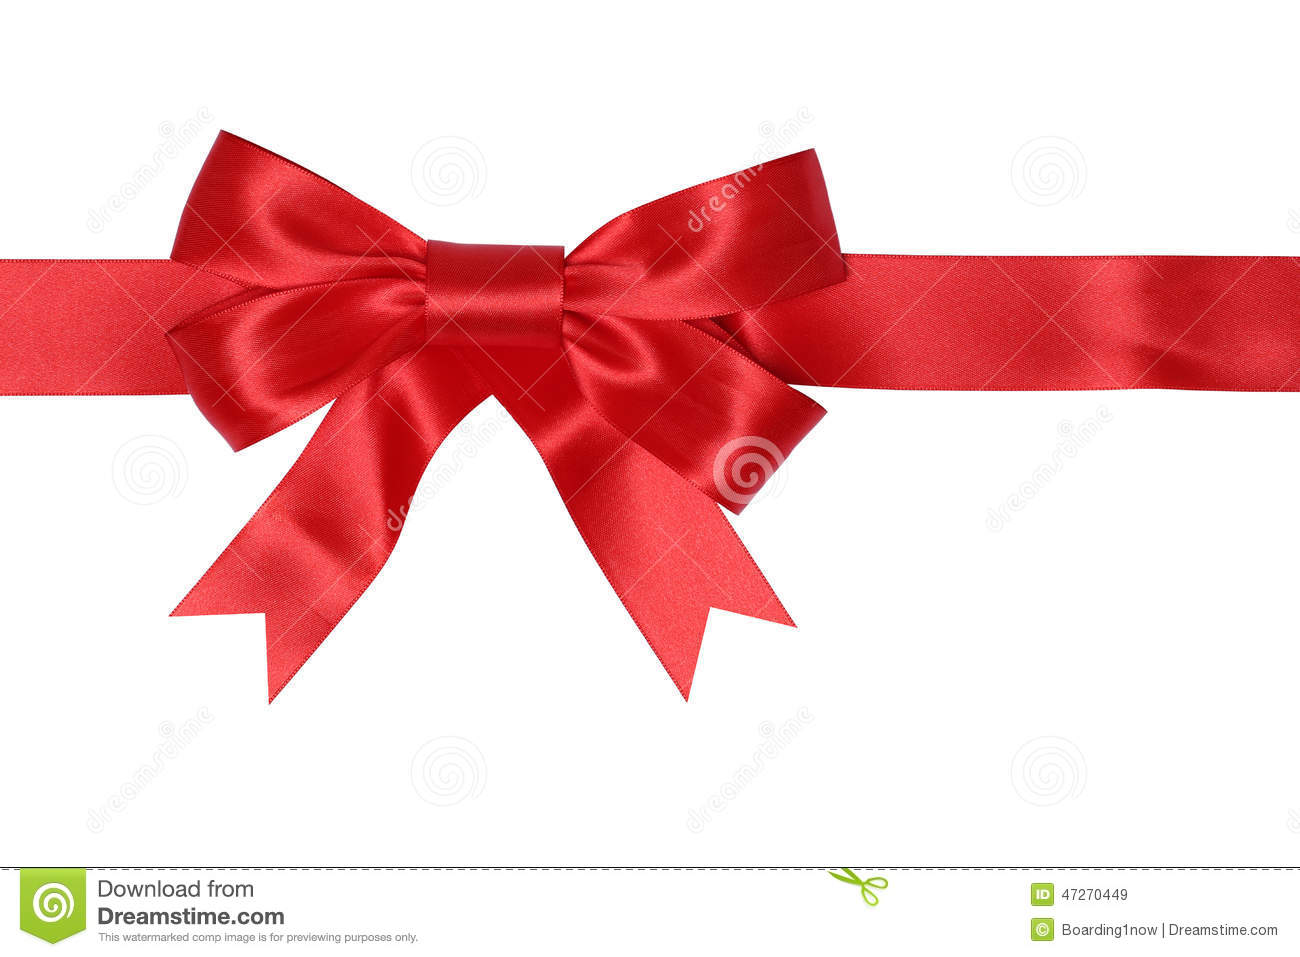 Liston Blanco Vector Png: Red Ribbon Gift With Bow For Gifts On Christmas Or